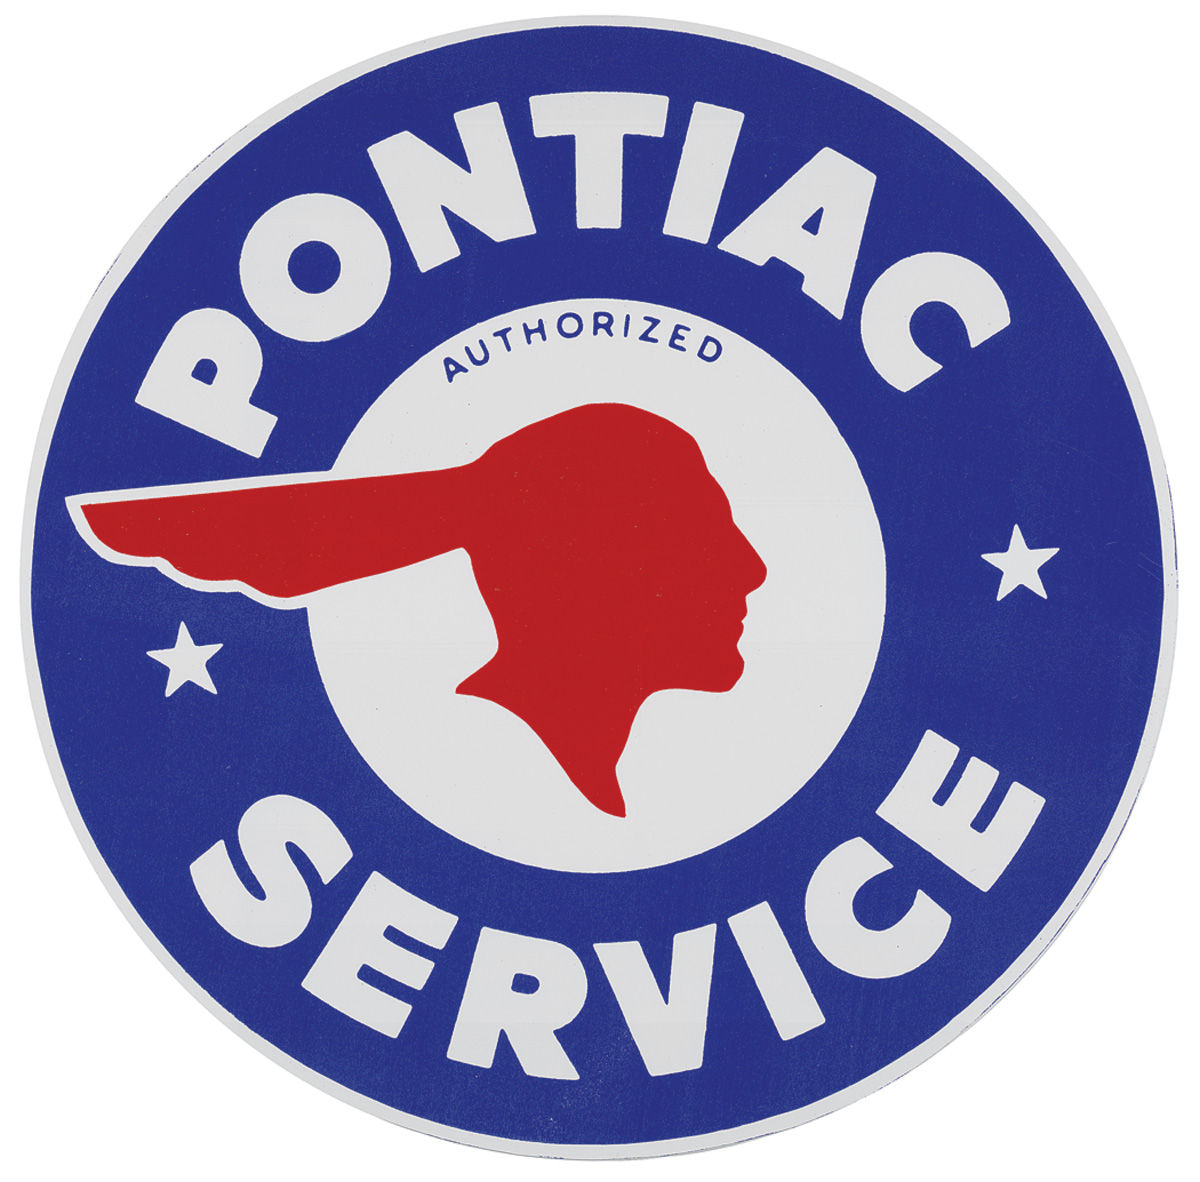 Decal, Pontiac Authorized Service, Indian Head, 10